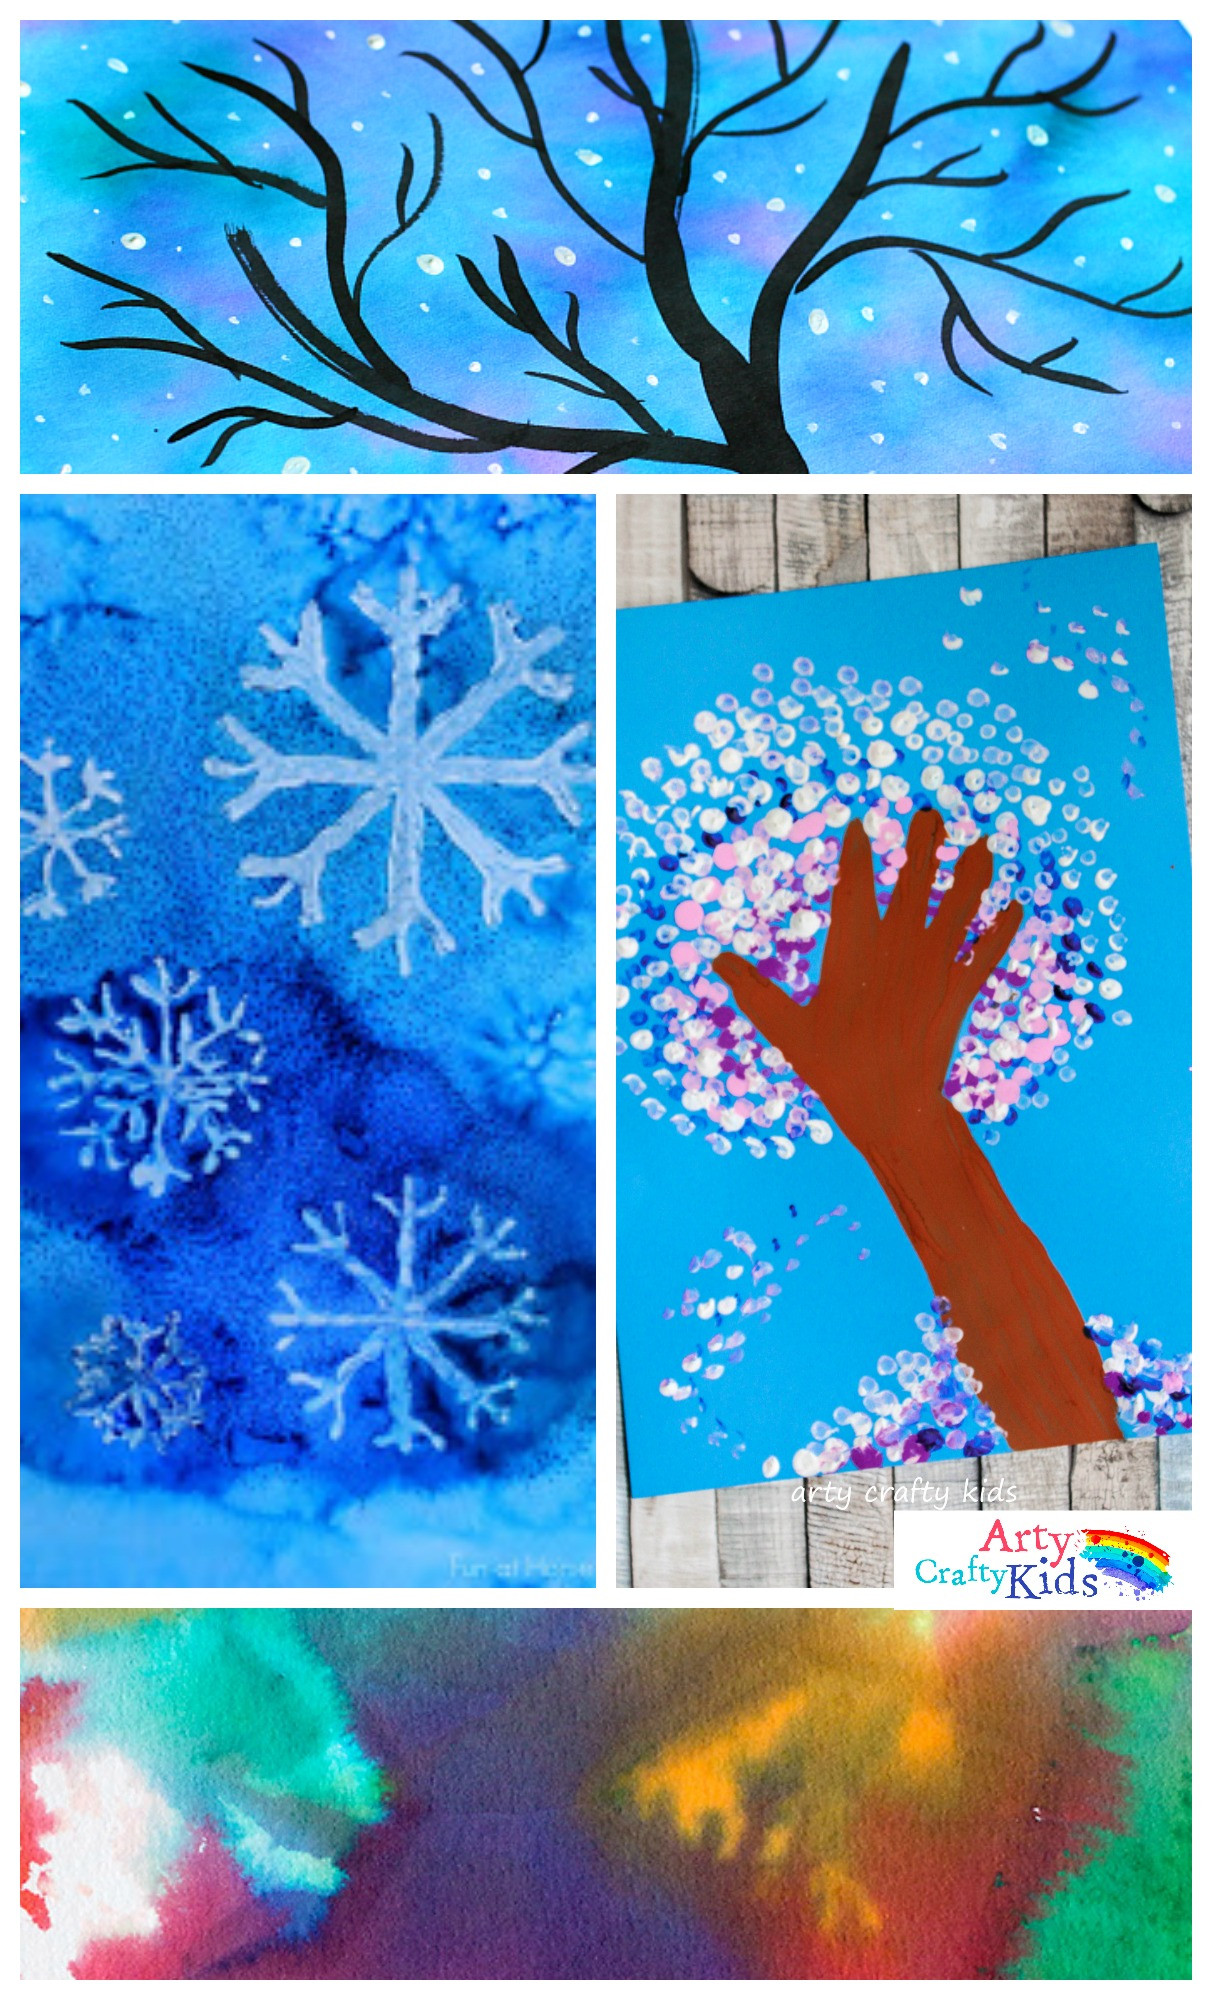 Best ideas about Winter Art Projects For Kids . Save or Pin 14 Wonderful Winter Art Projects for Kids Now.